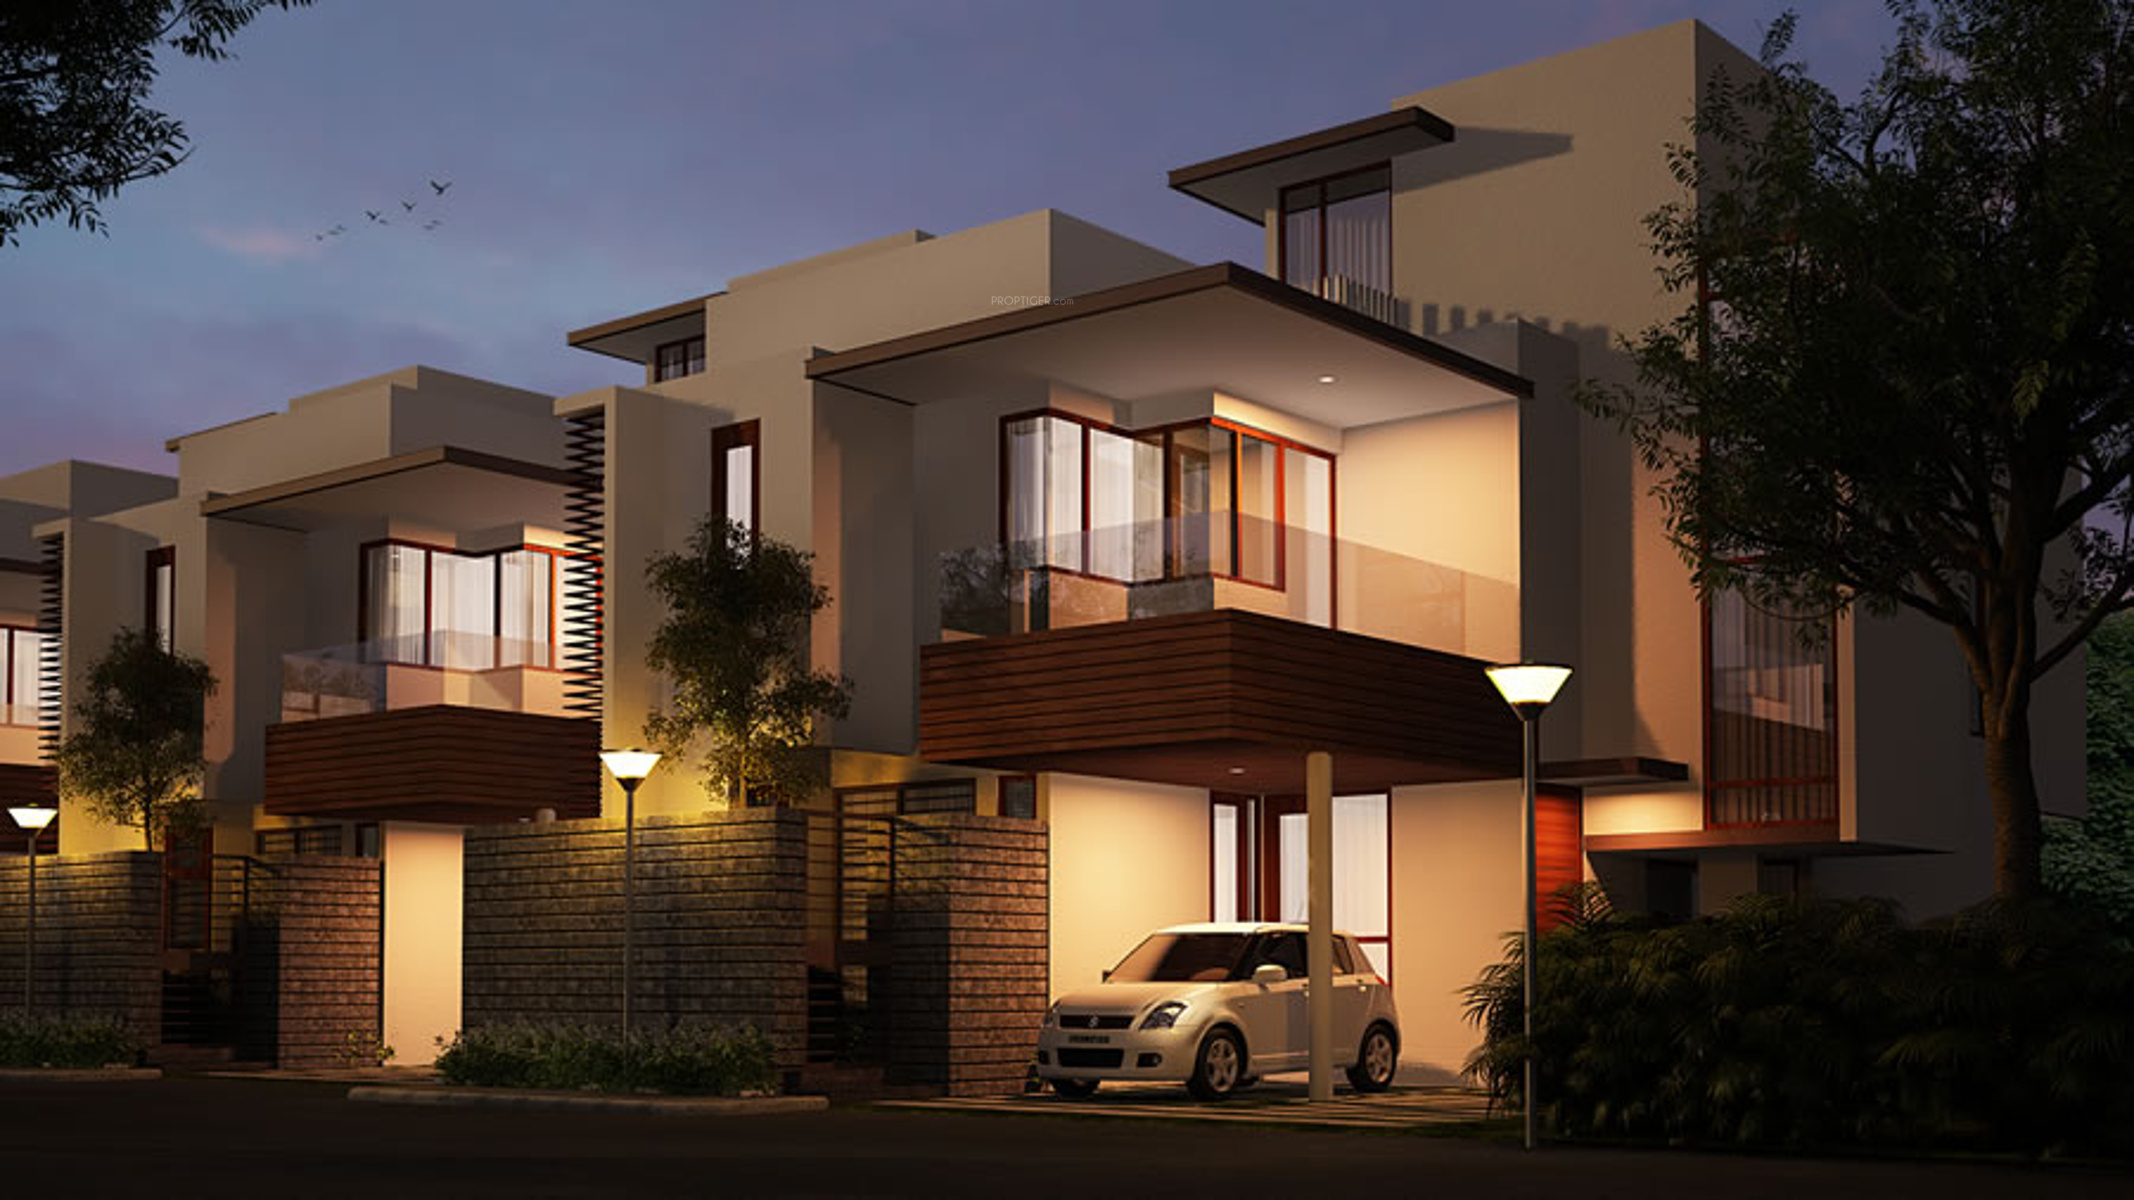 Front Elevation Of Villas In Bangalore : Sq ft bhk floor plan image nd around the mangoes